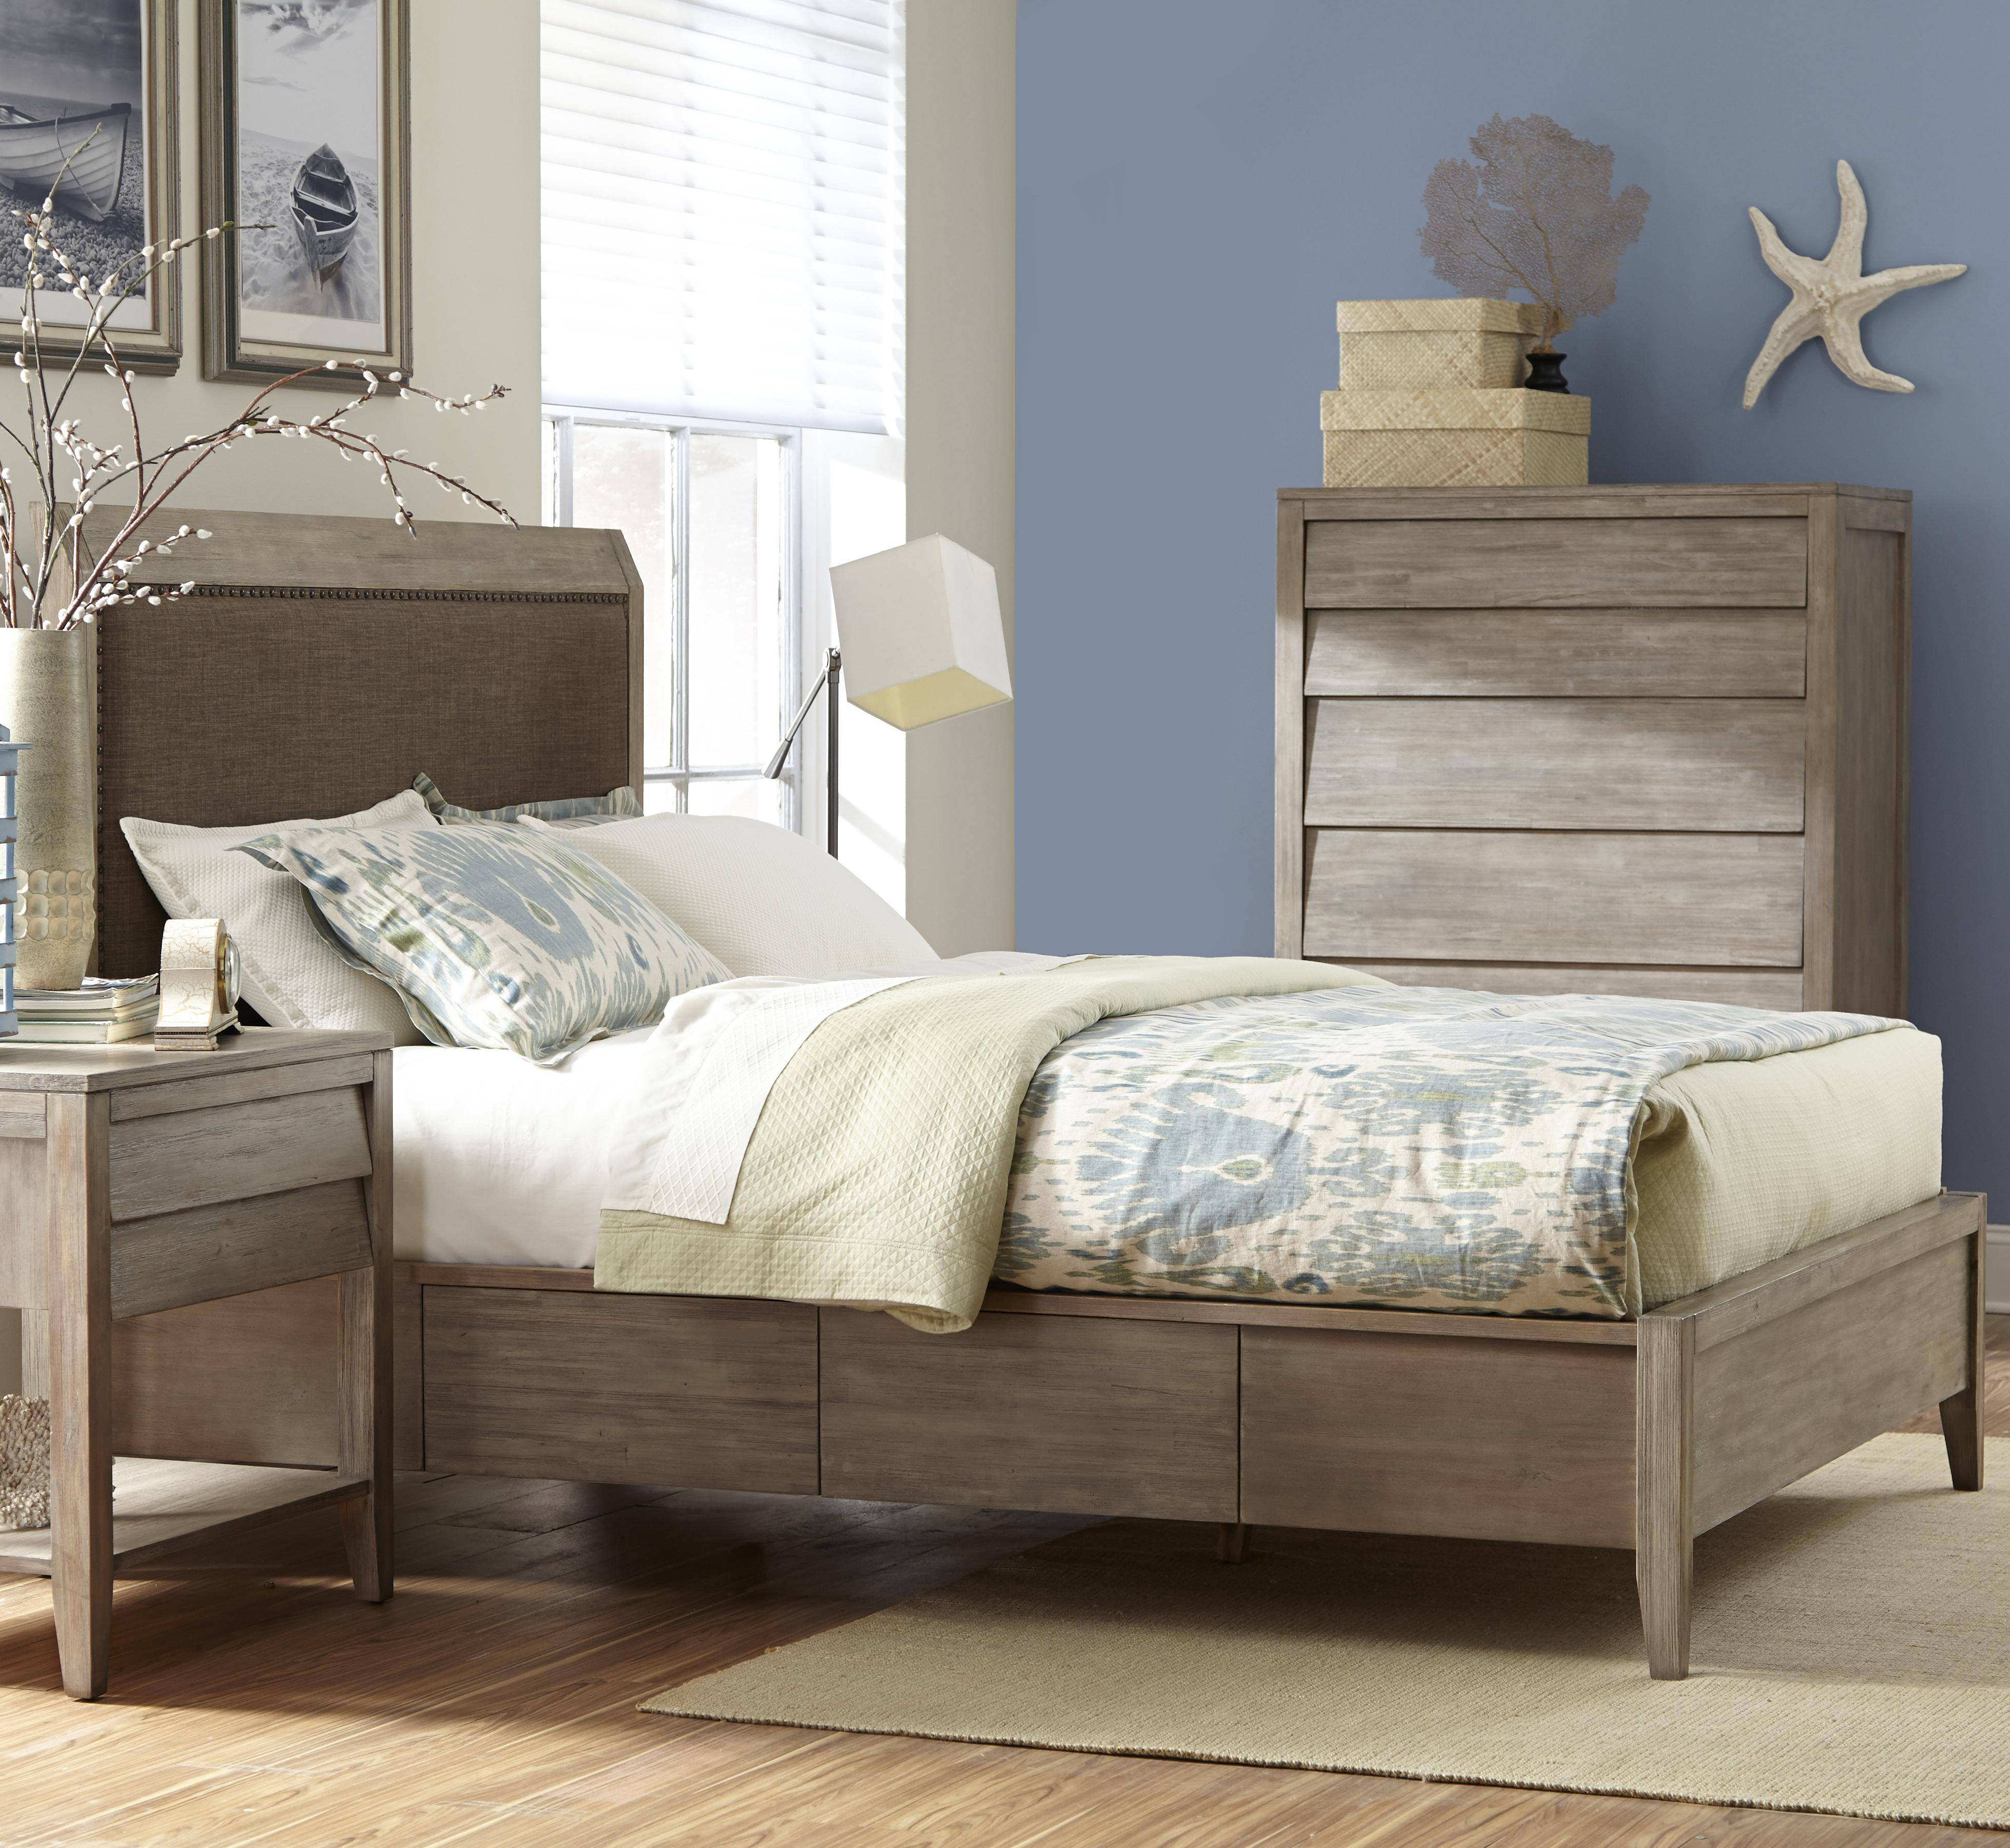 Cresent Fine Furniture Corliss Landing King Upholstered Bed - Item Number: 5633KB+KR